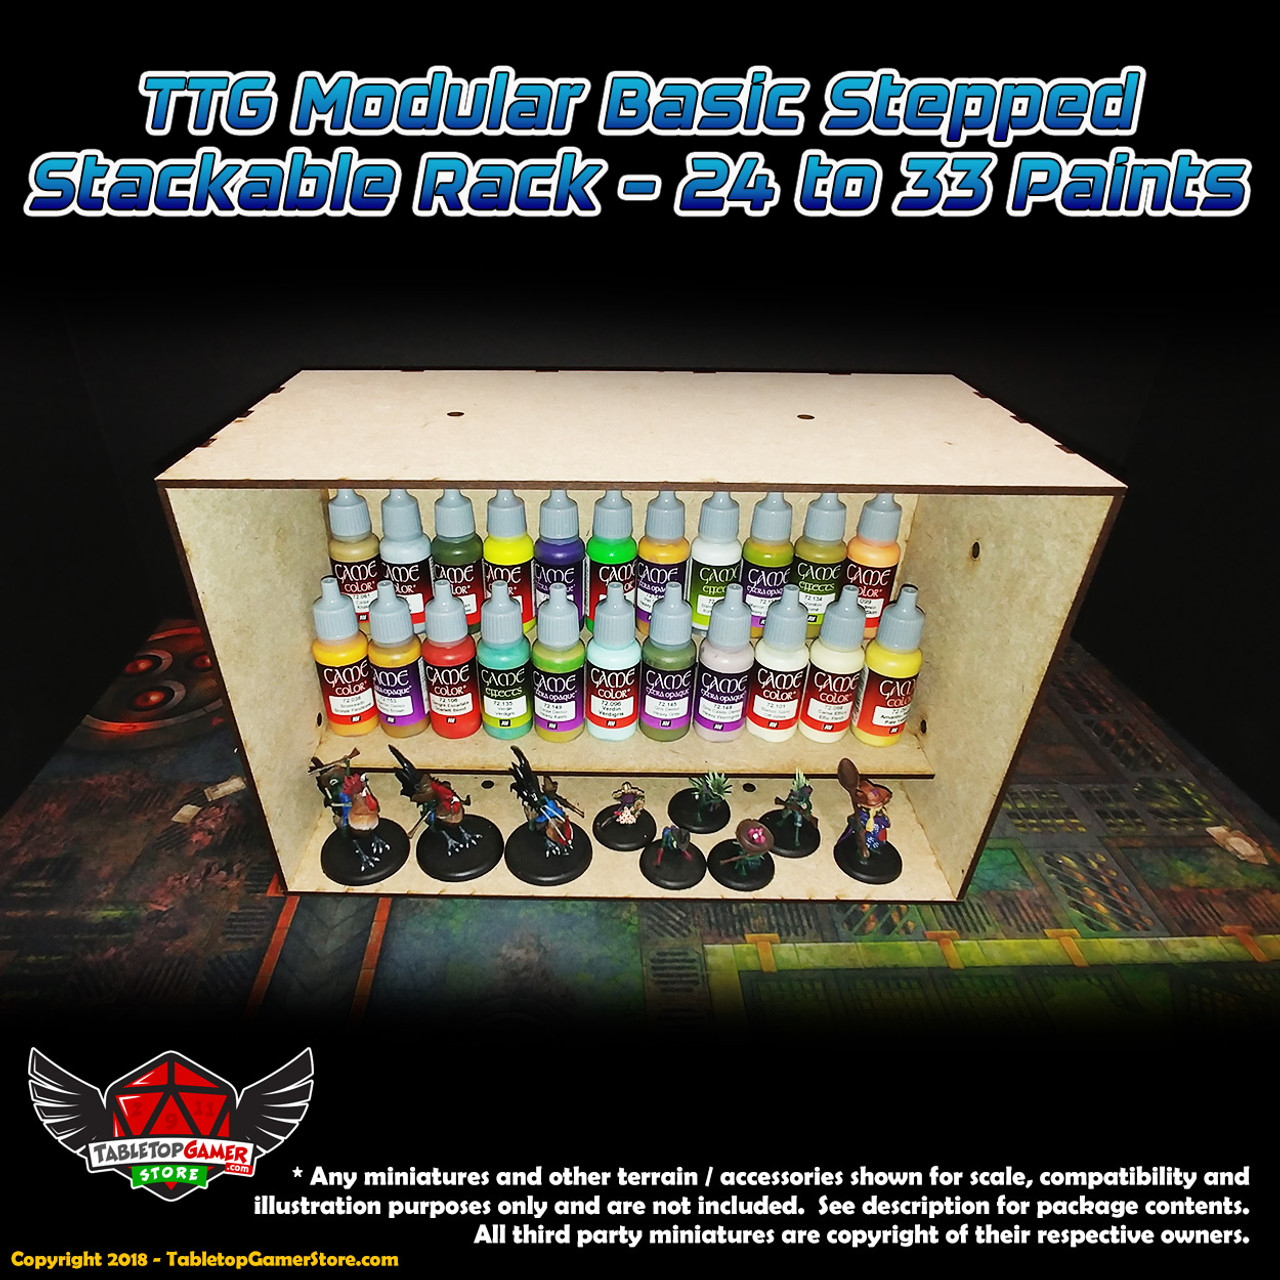 TTG Modular Basic Stepped Stackable Rack - 24 to 33 Paints